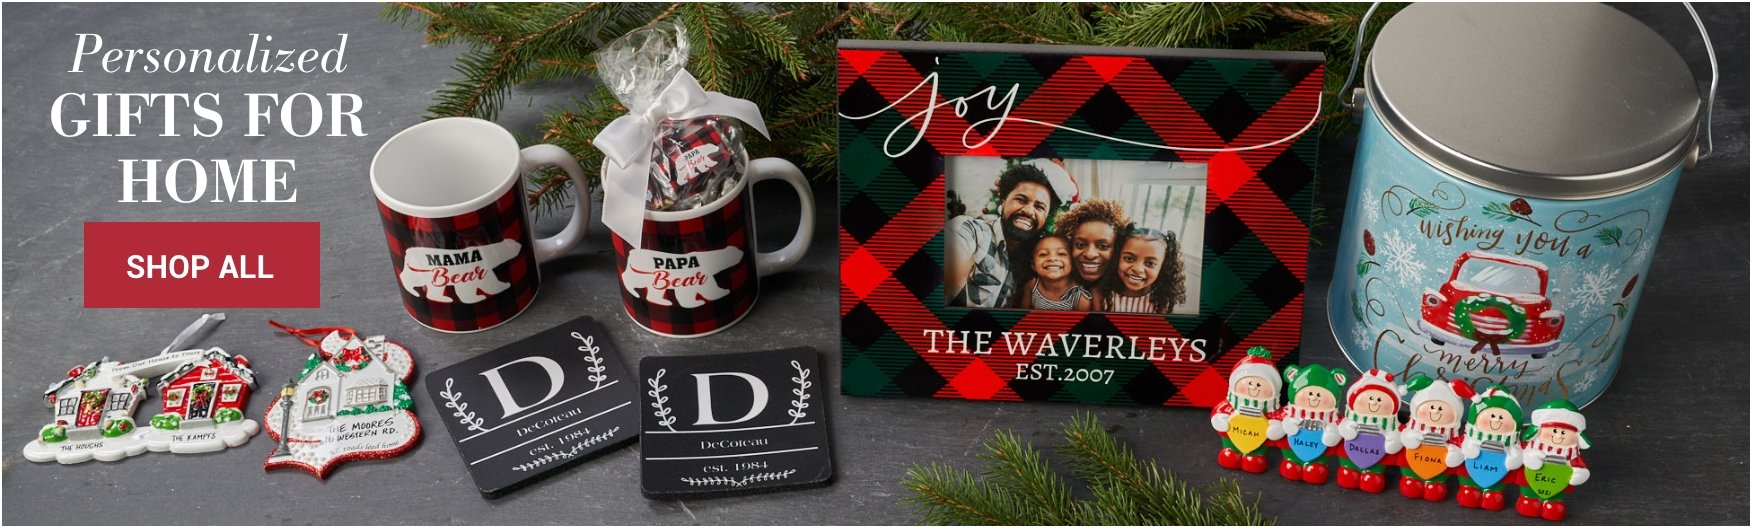 Shop Personalized Gifts for Home and Family